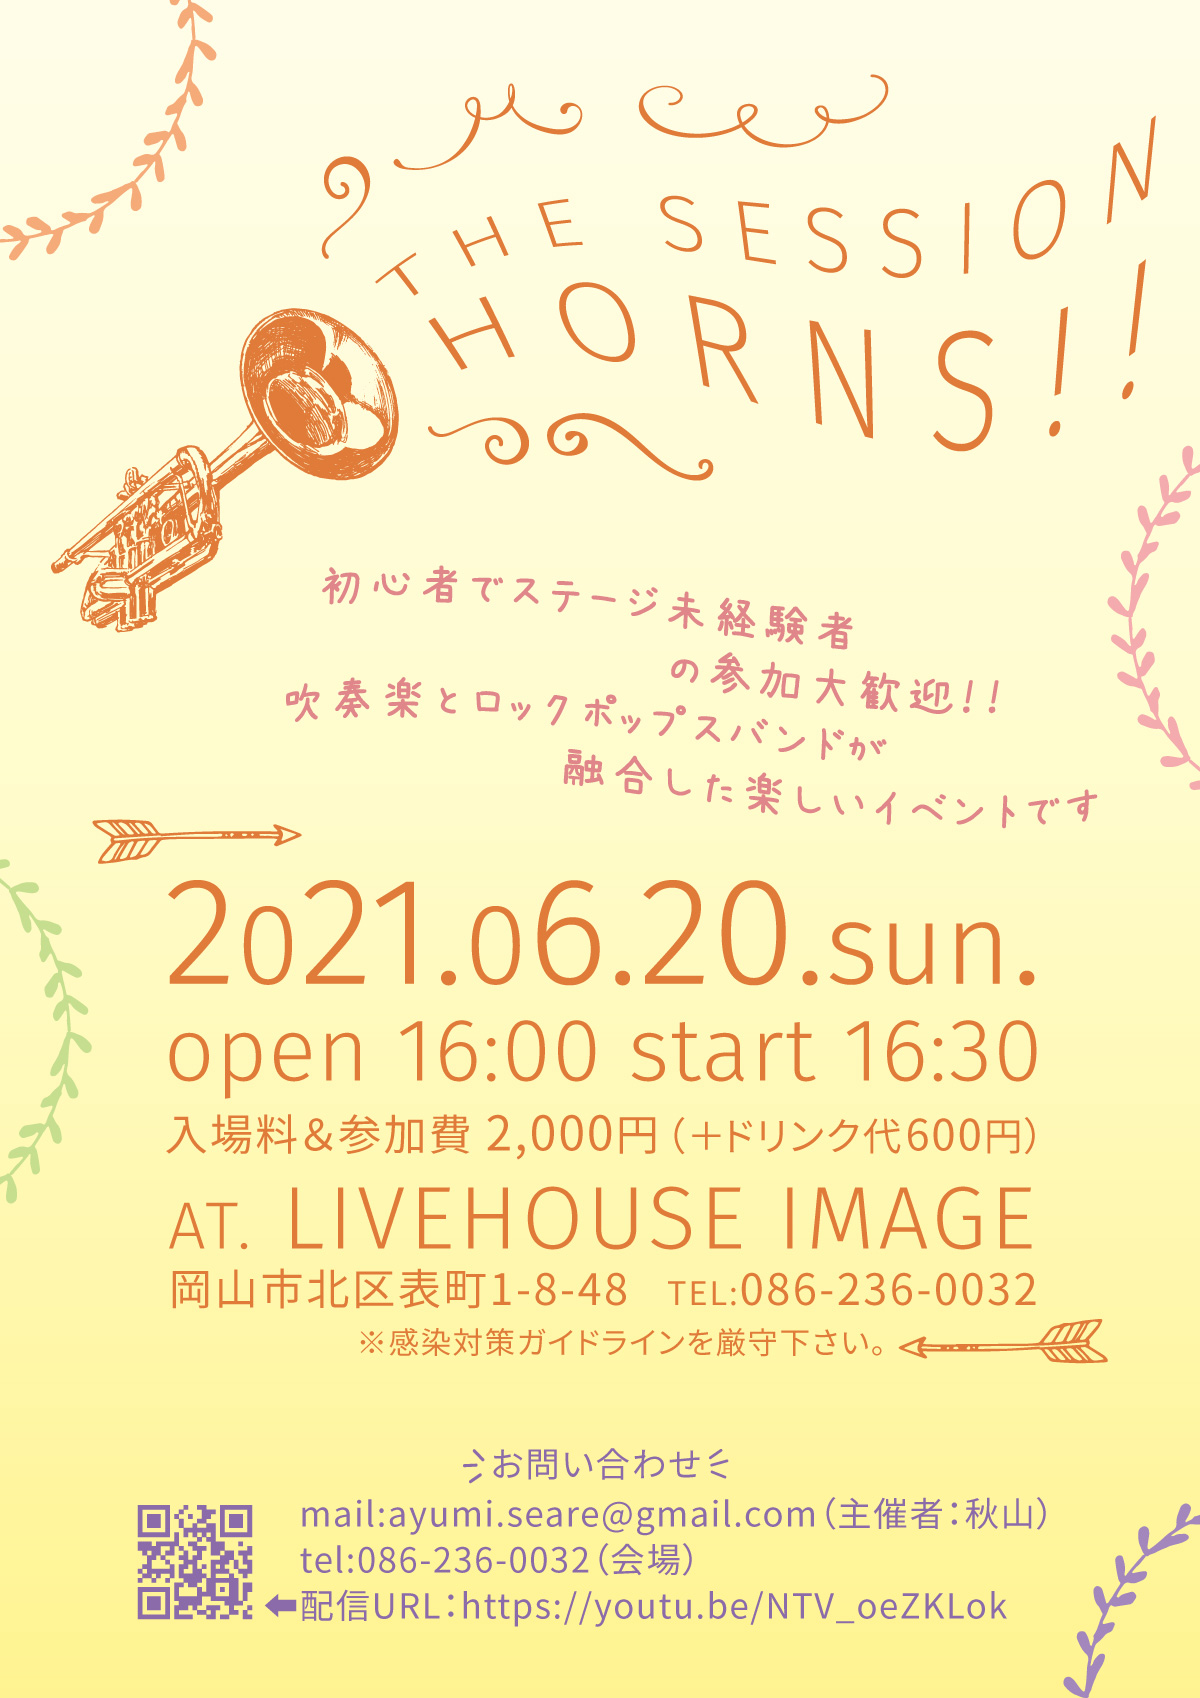 THE Session horns !!!